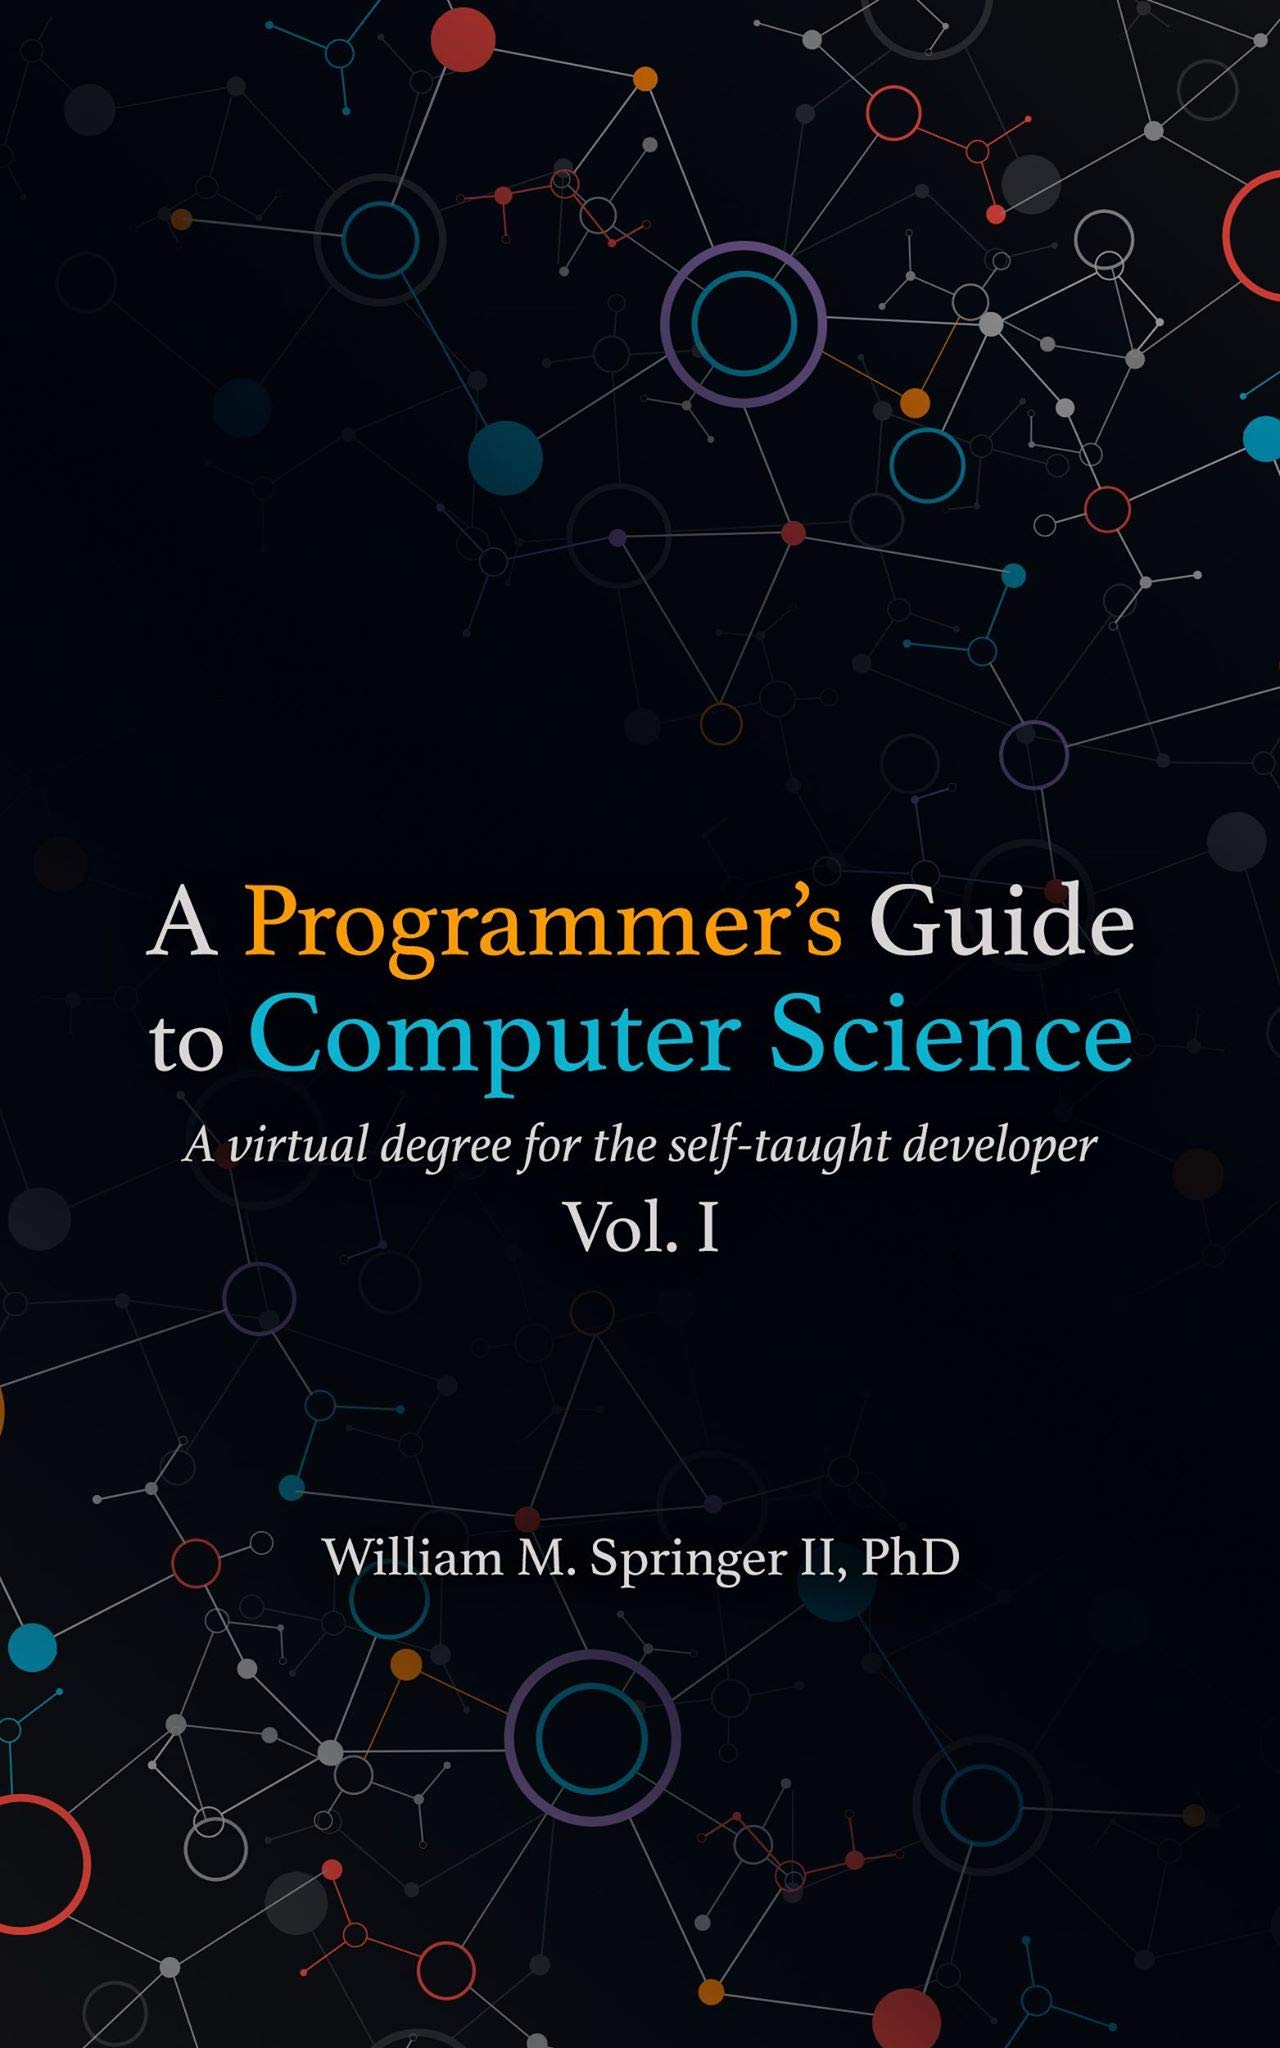 Image OfA Programmer's Guide To Computer Science: A Virtual Degree For The Self-taught Developer